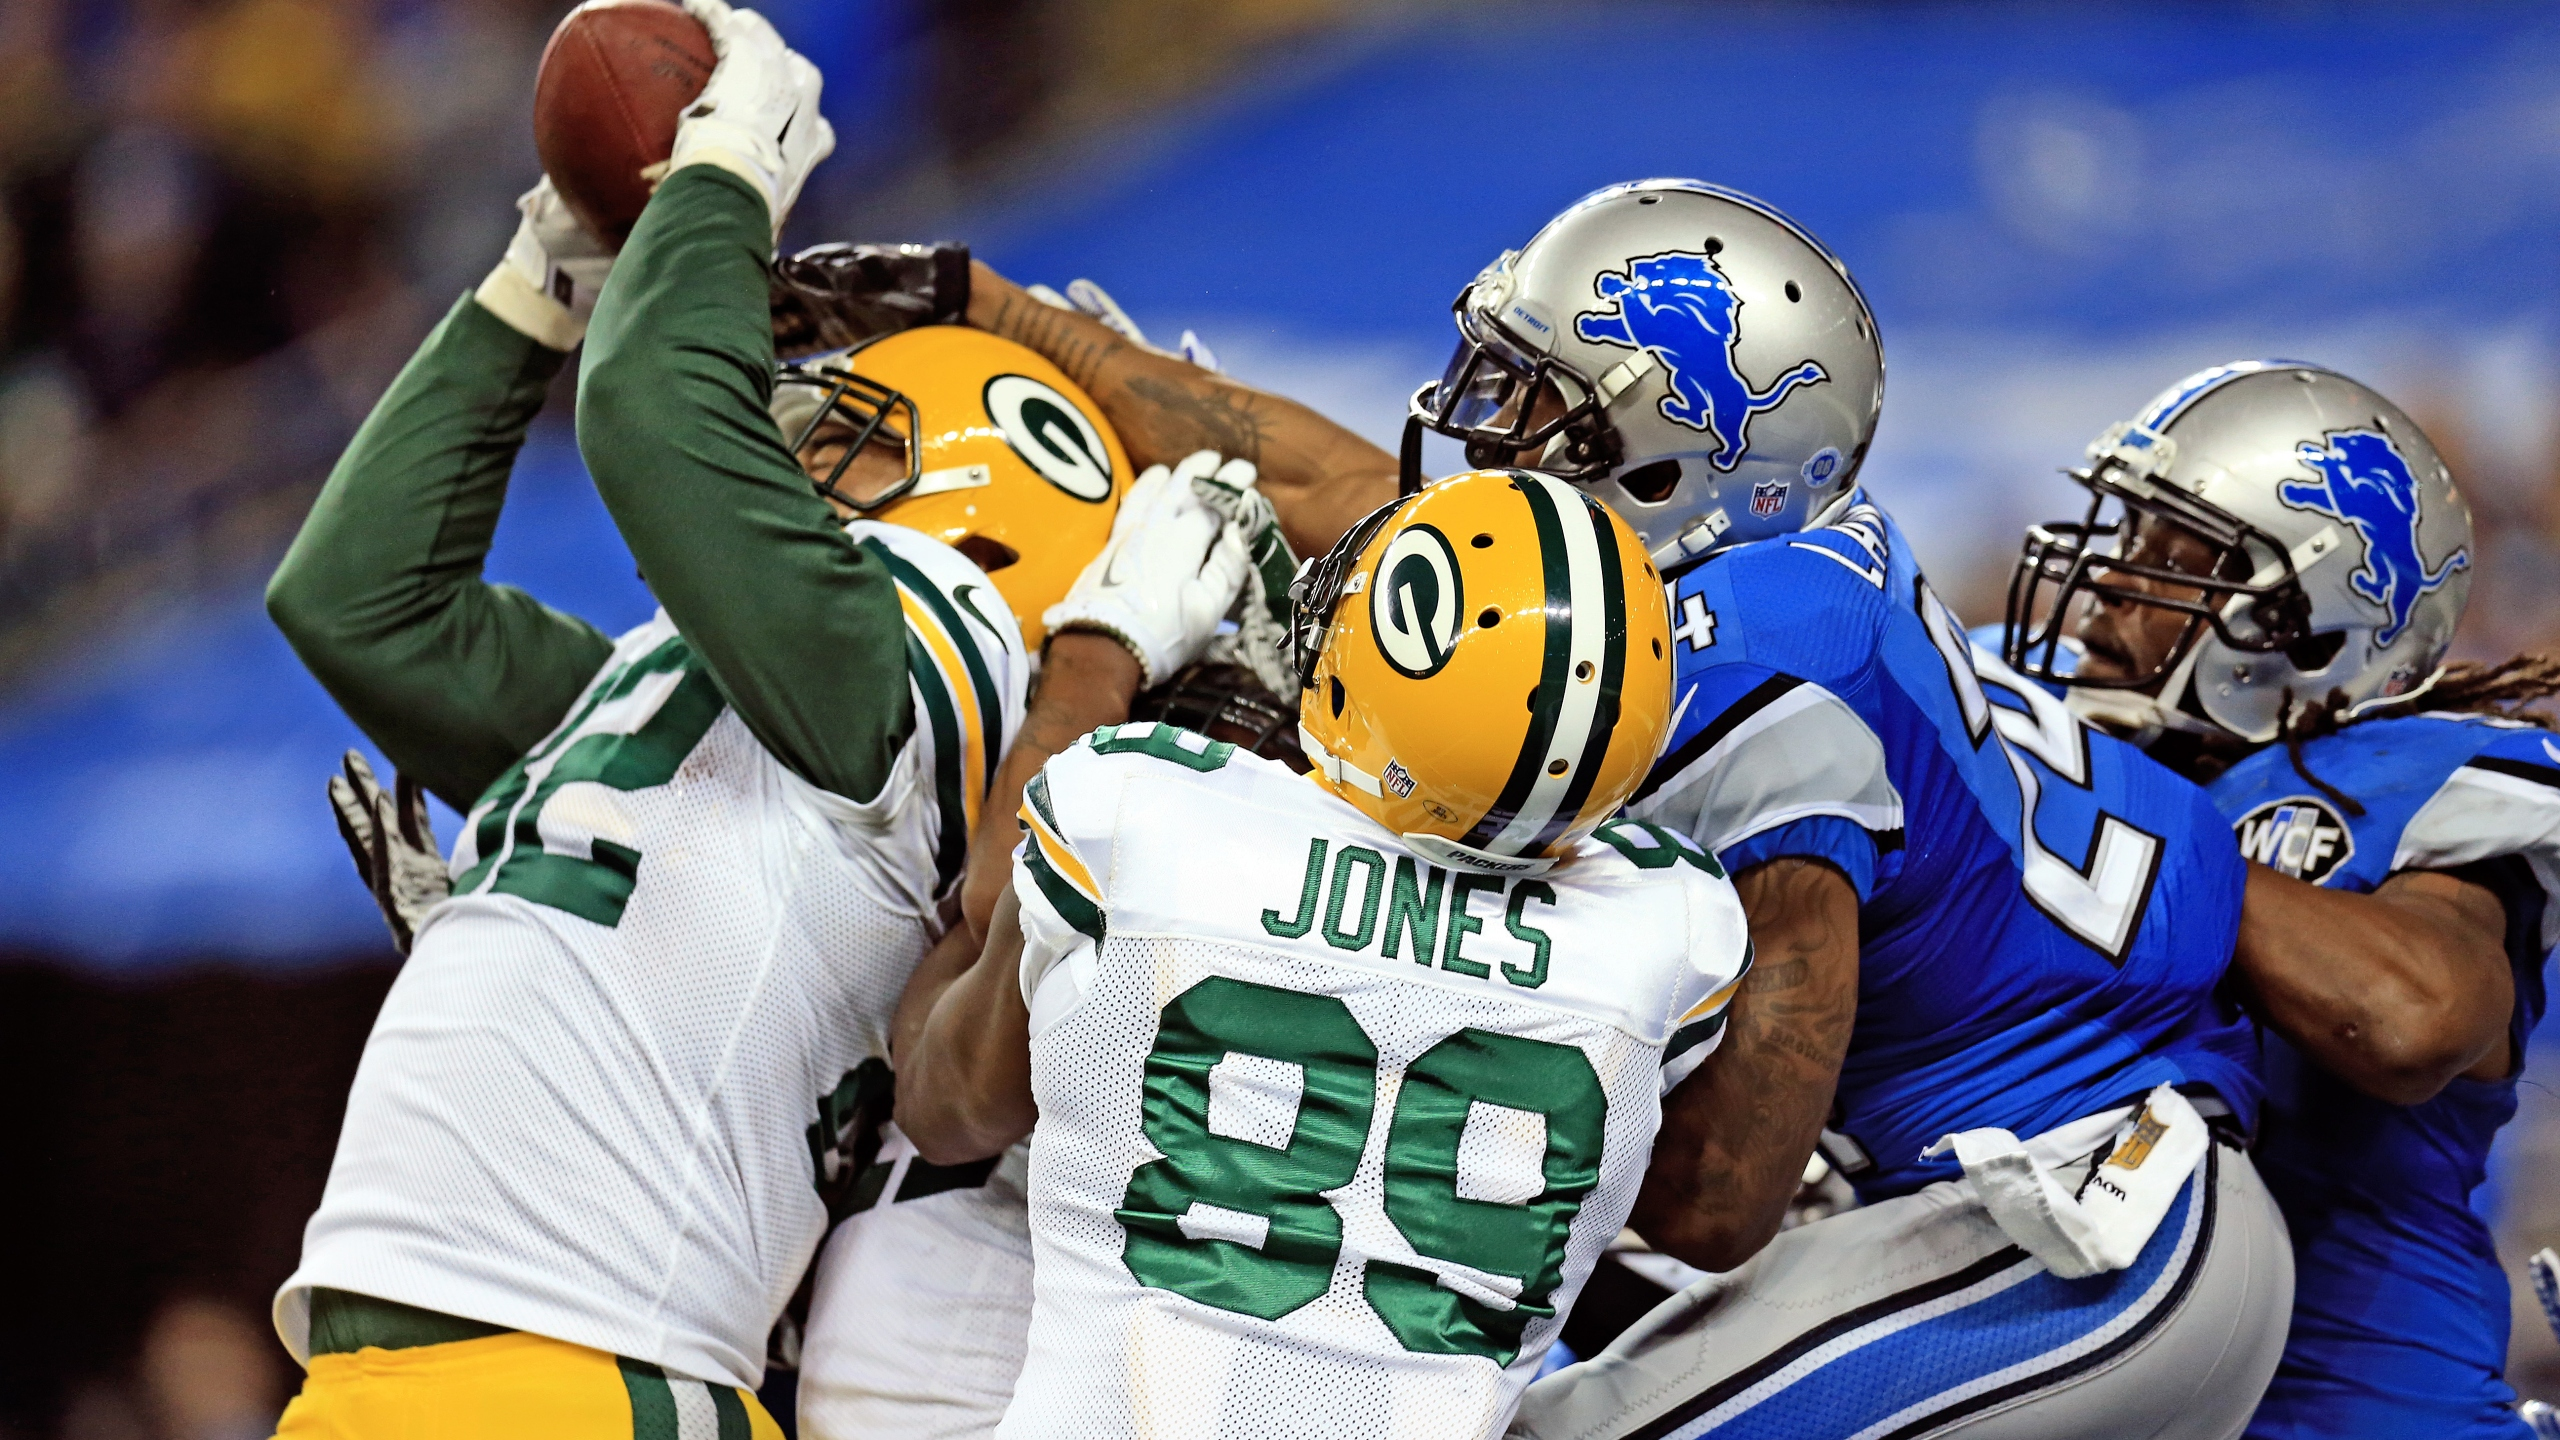 Richard Rodgers catches hail mary in Packers win over Lions-60249465